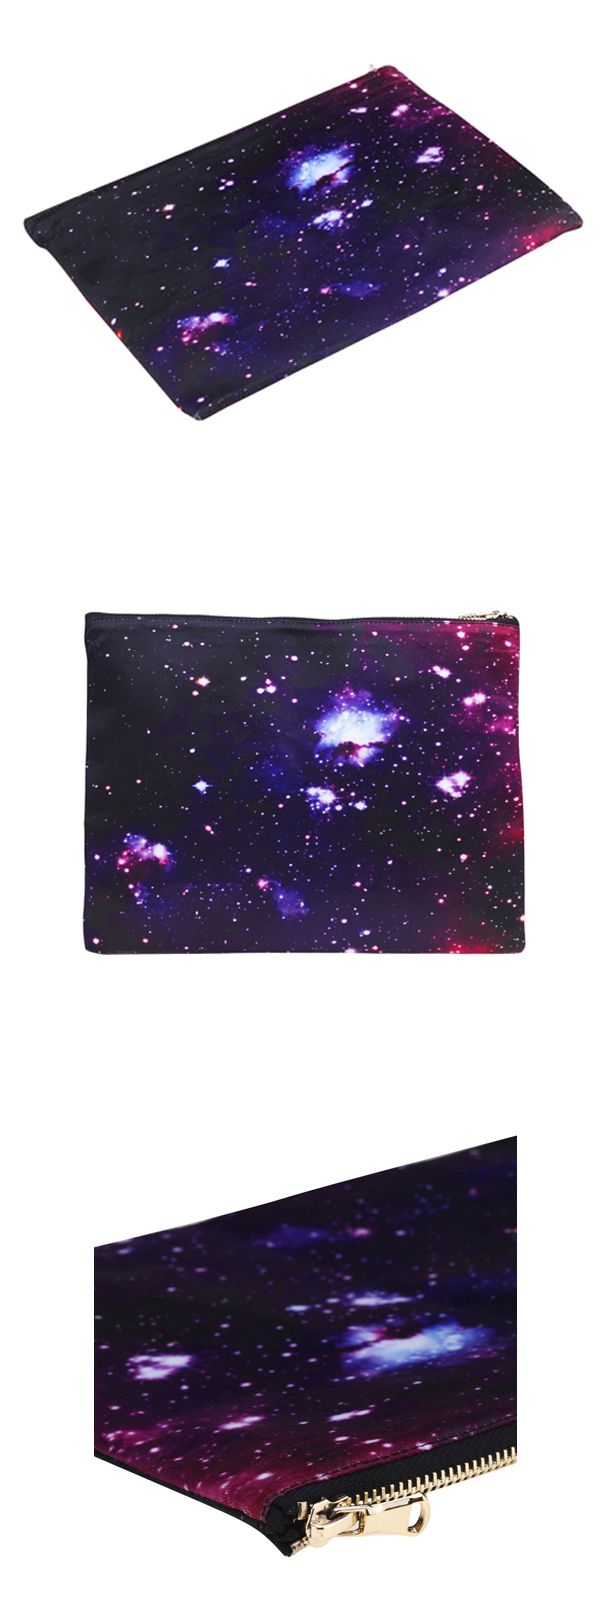 DIY galaxy pattern would be sweet used on a pillow case